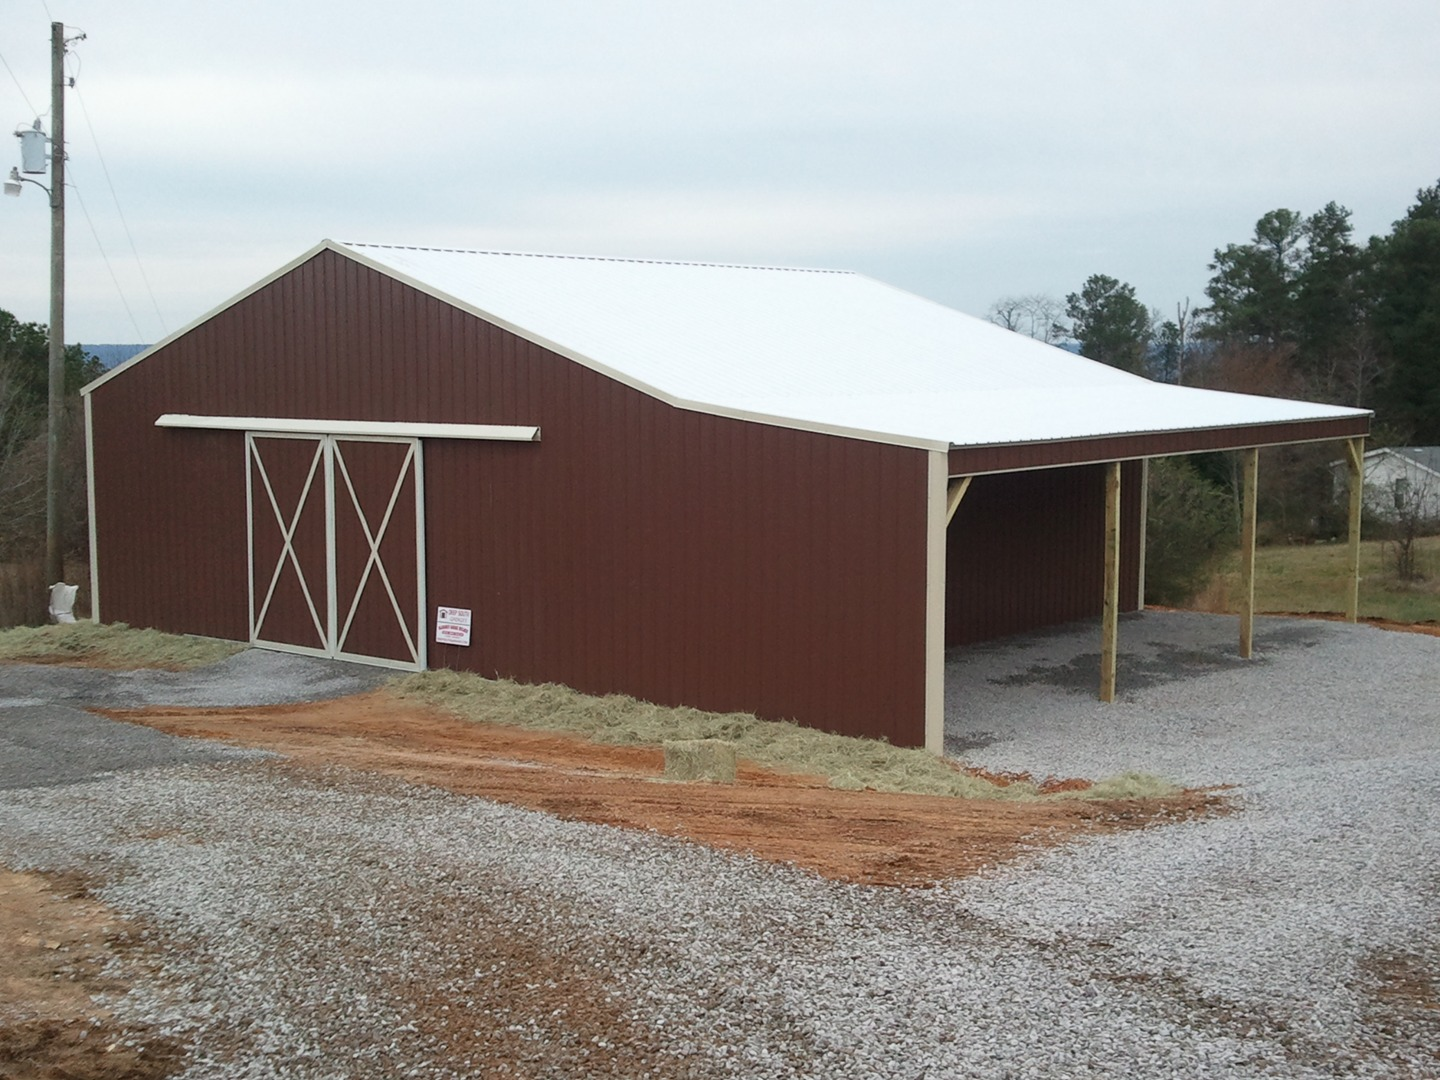 ideas barns garages blytheprojects garage residential pole designs home barn